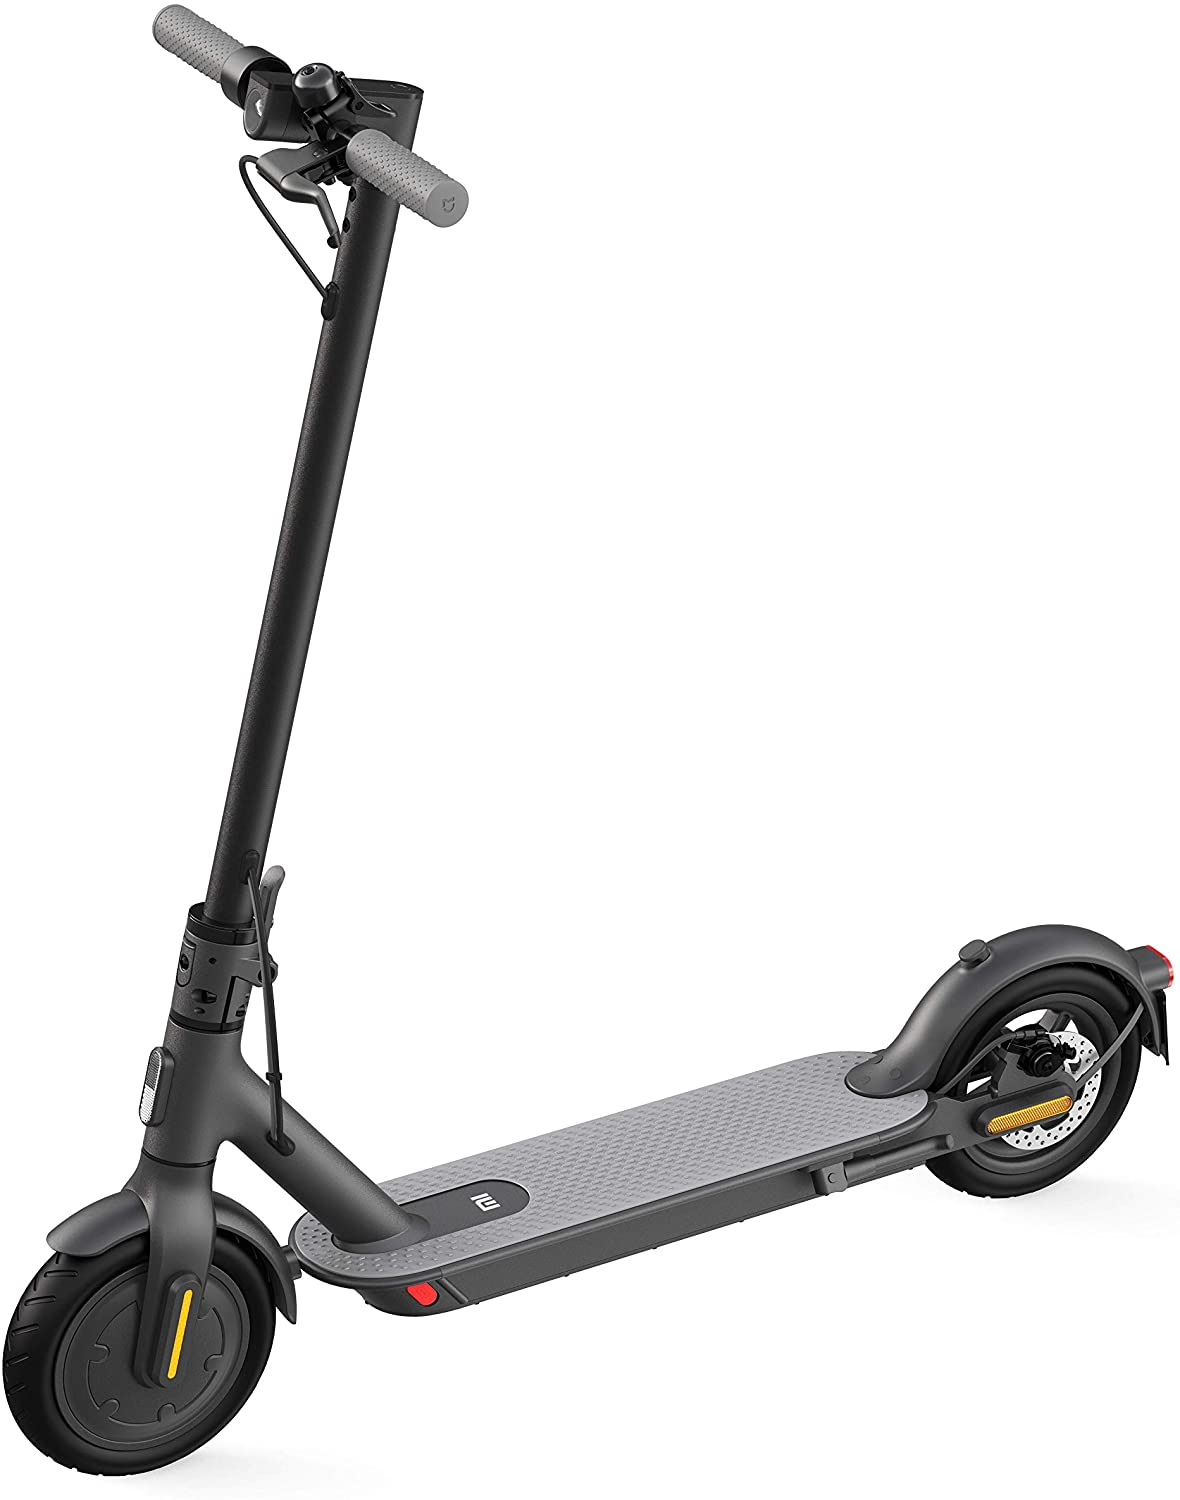 Mi Electric Scooter 1S Folding Electric Scooter FBC4019GL